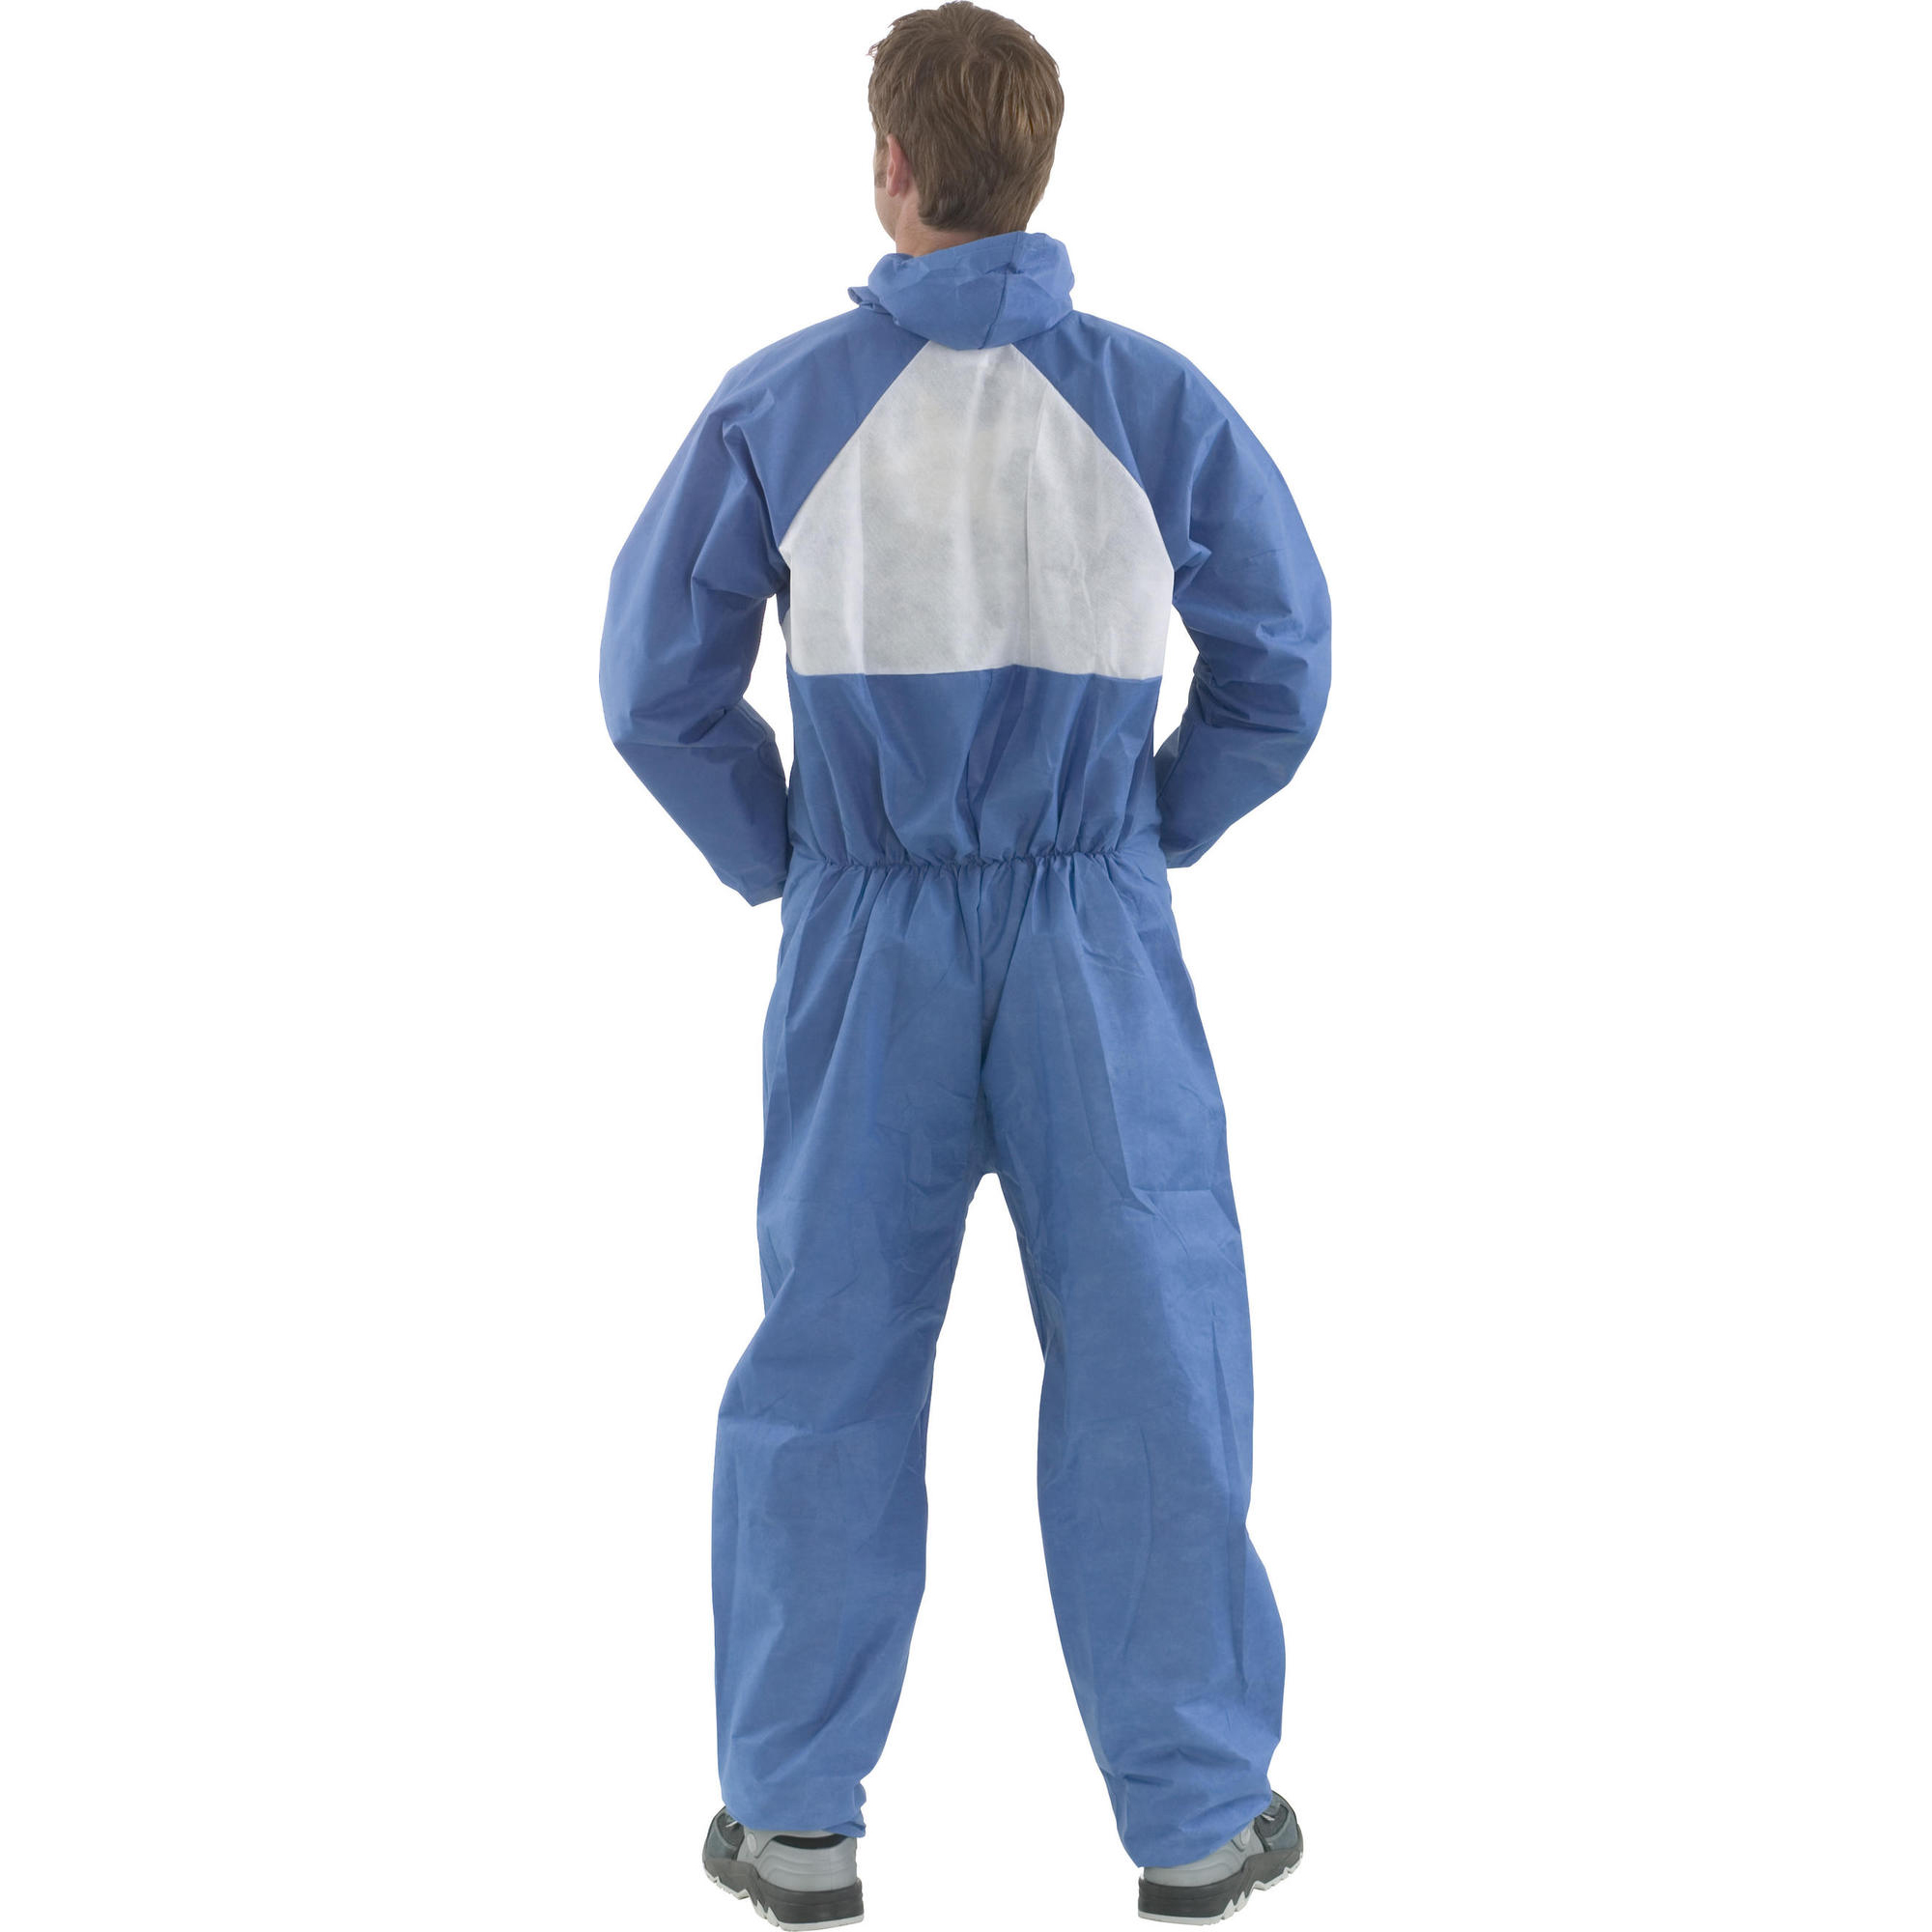 3M 4530 Fire Resistant Coveralls M Blue/White Ref 4530M Pack 20 *Up to 3 Day Leadtime*